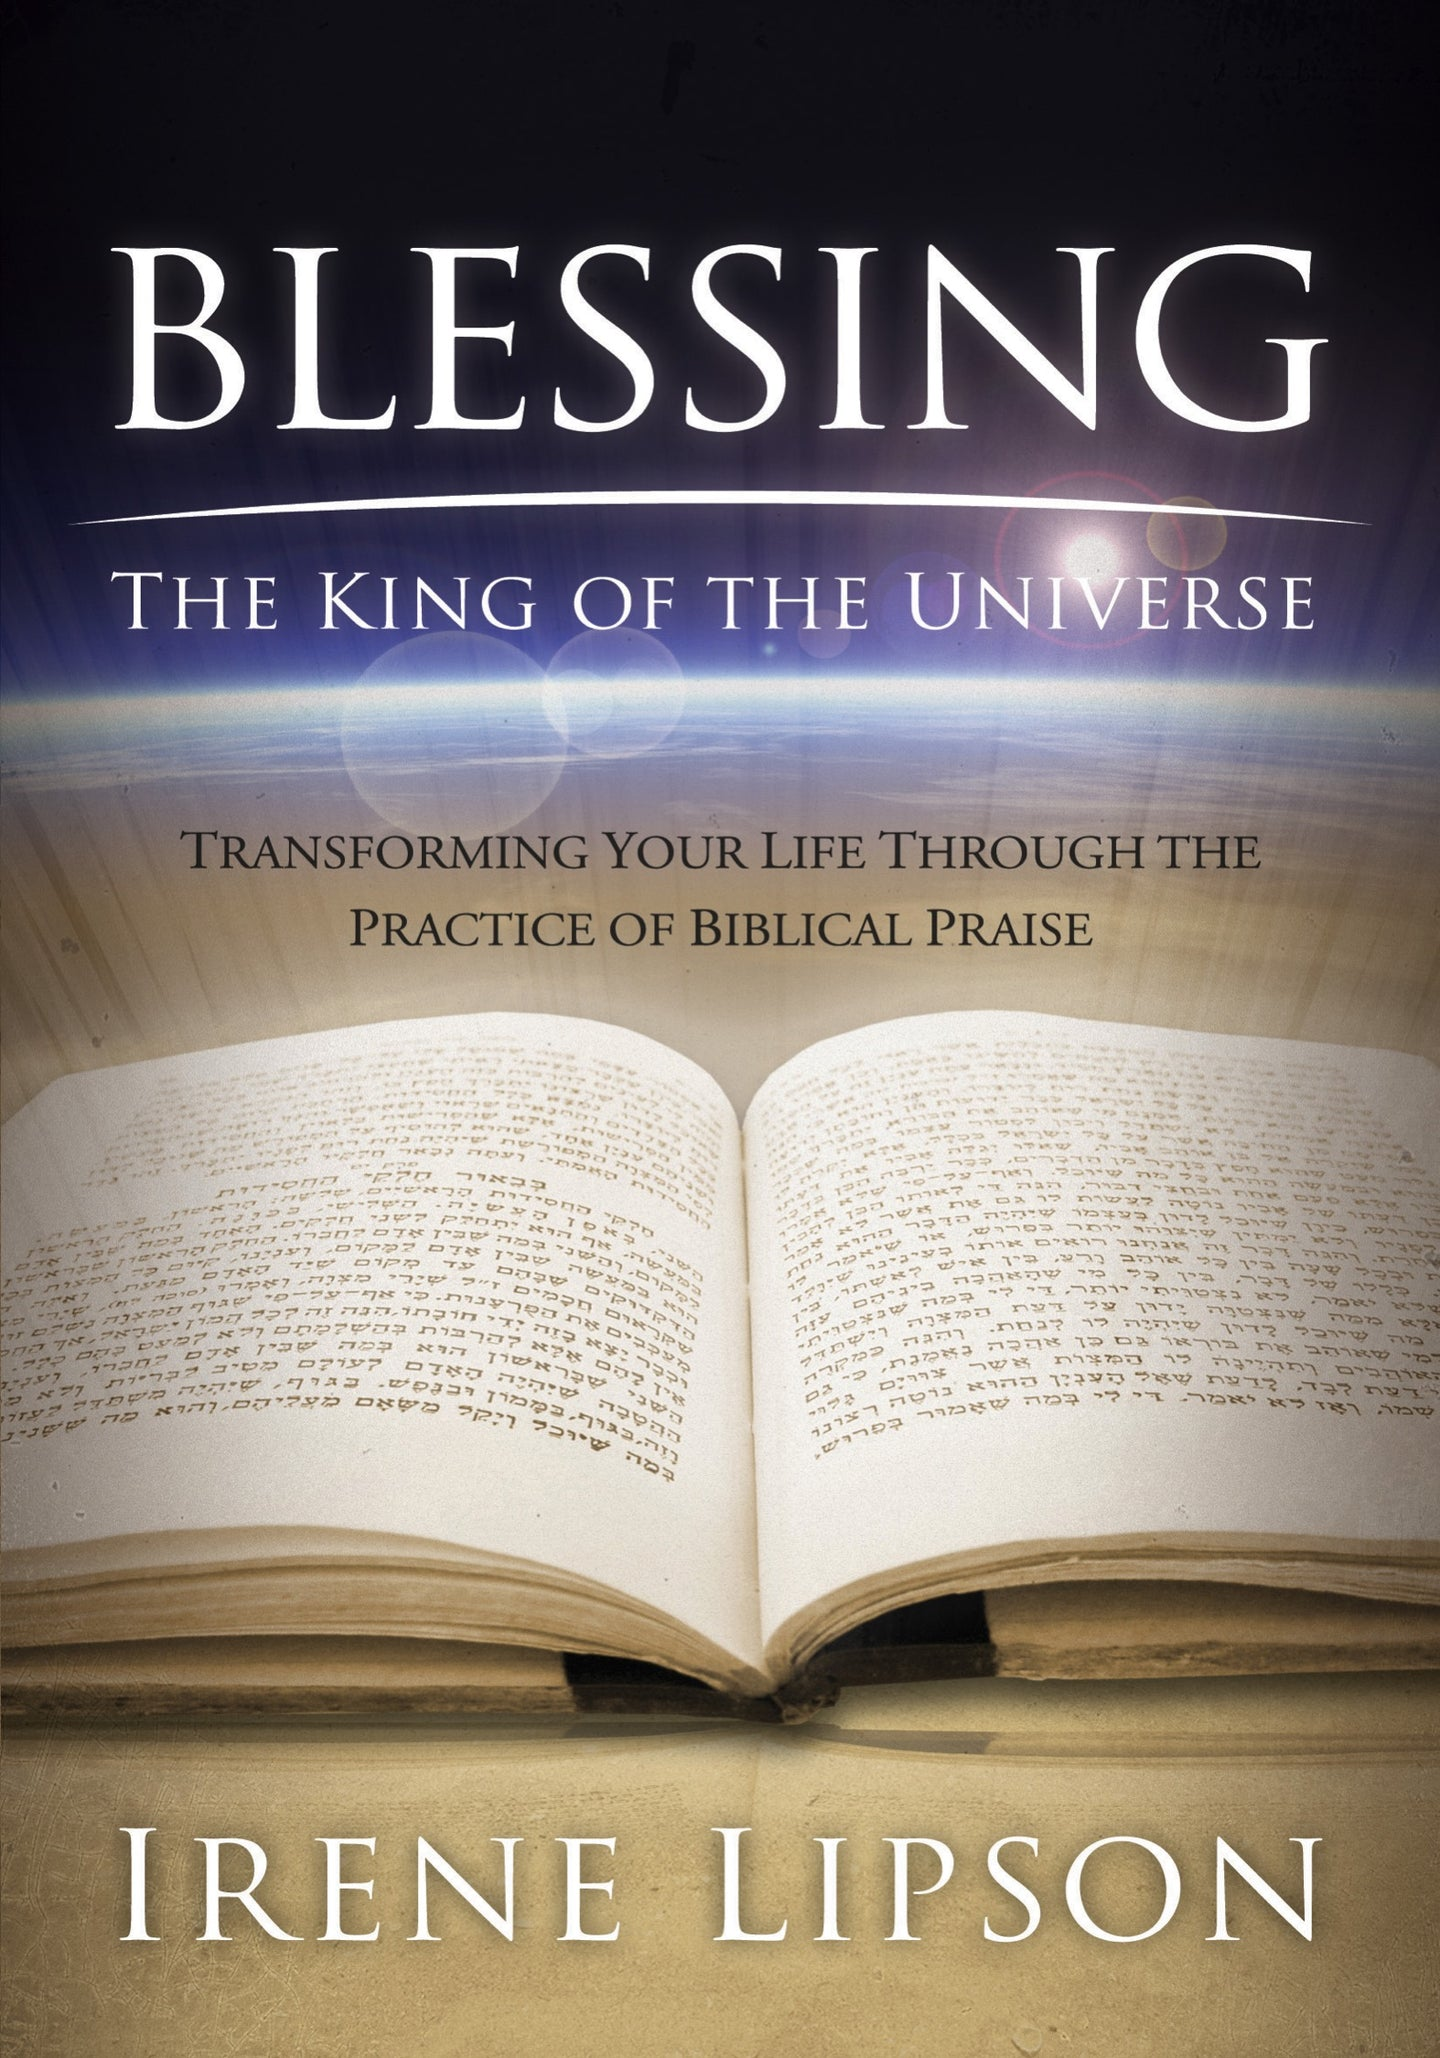 Blessing the King of the Universe: Transforming Your Life Through the Practice of Biblical Praise by Irene Lipson